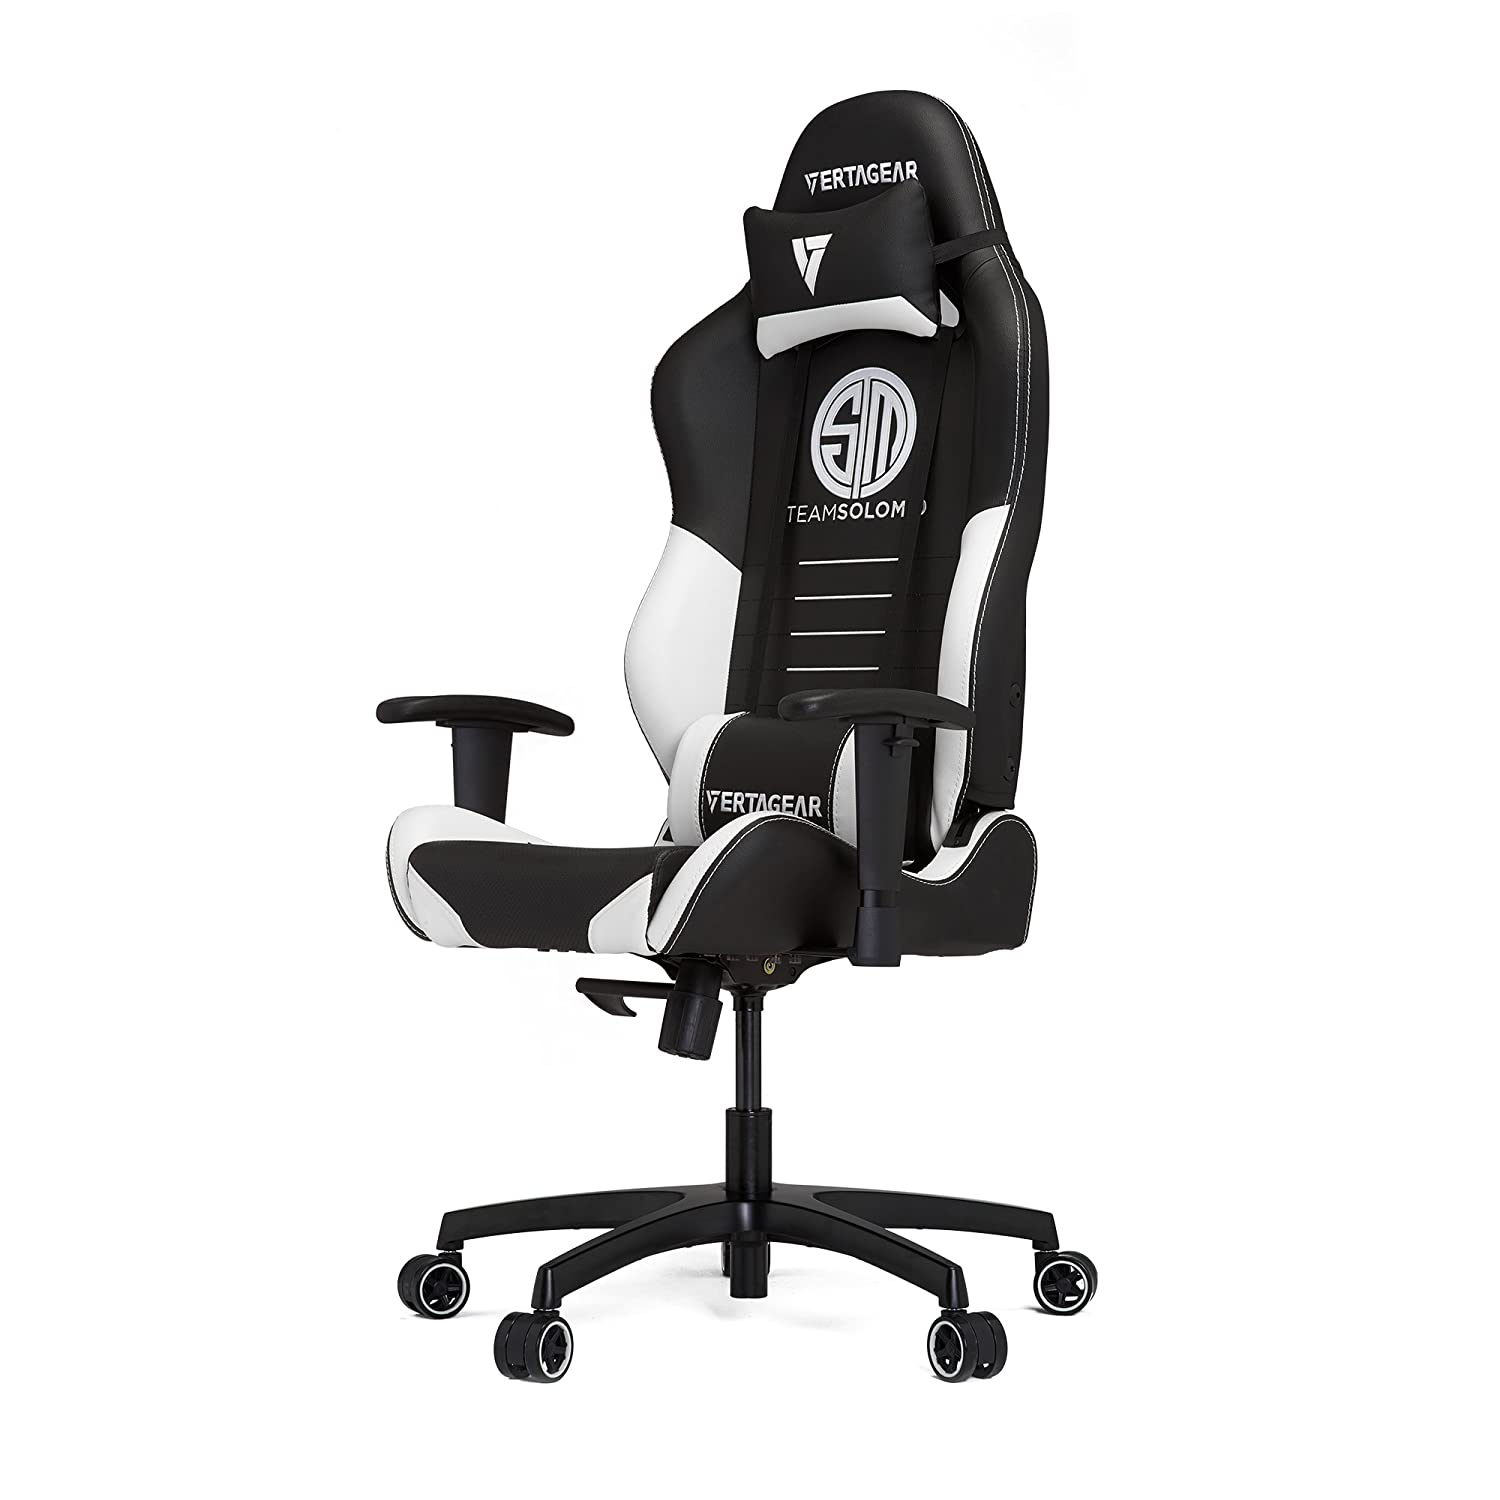 Vertagear TSM Racing Series Gaming Chair,Large,Black White